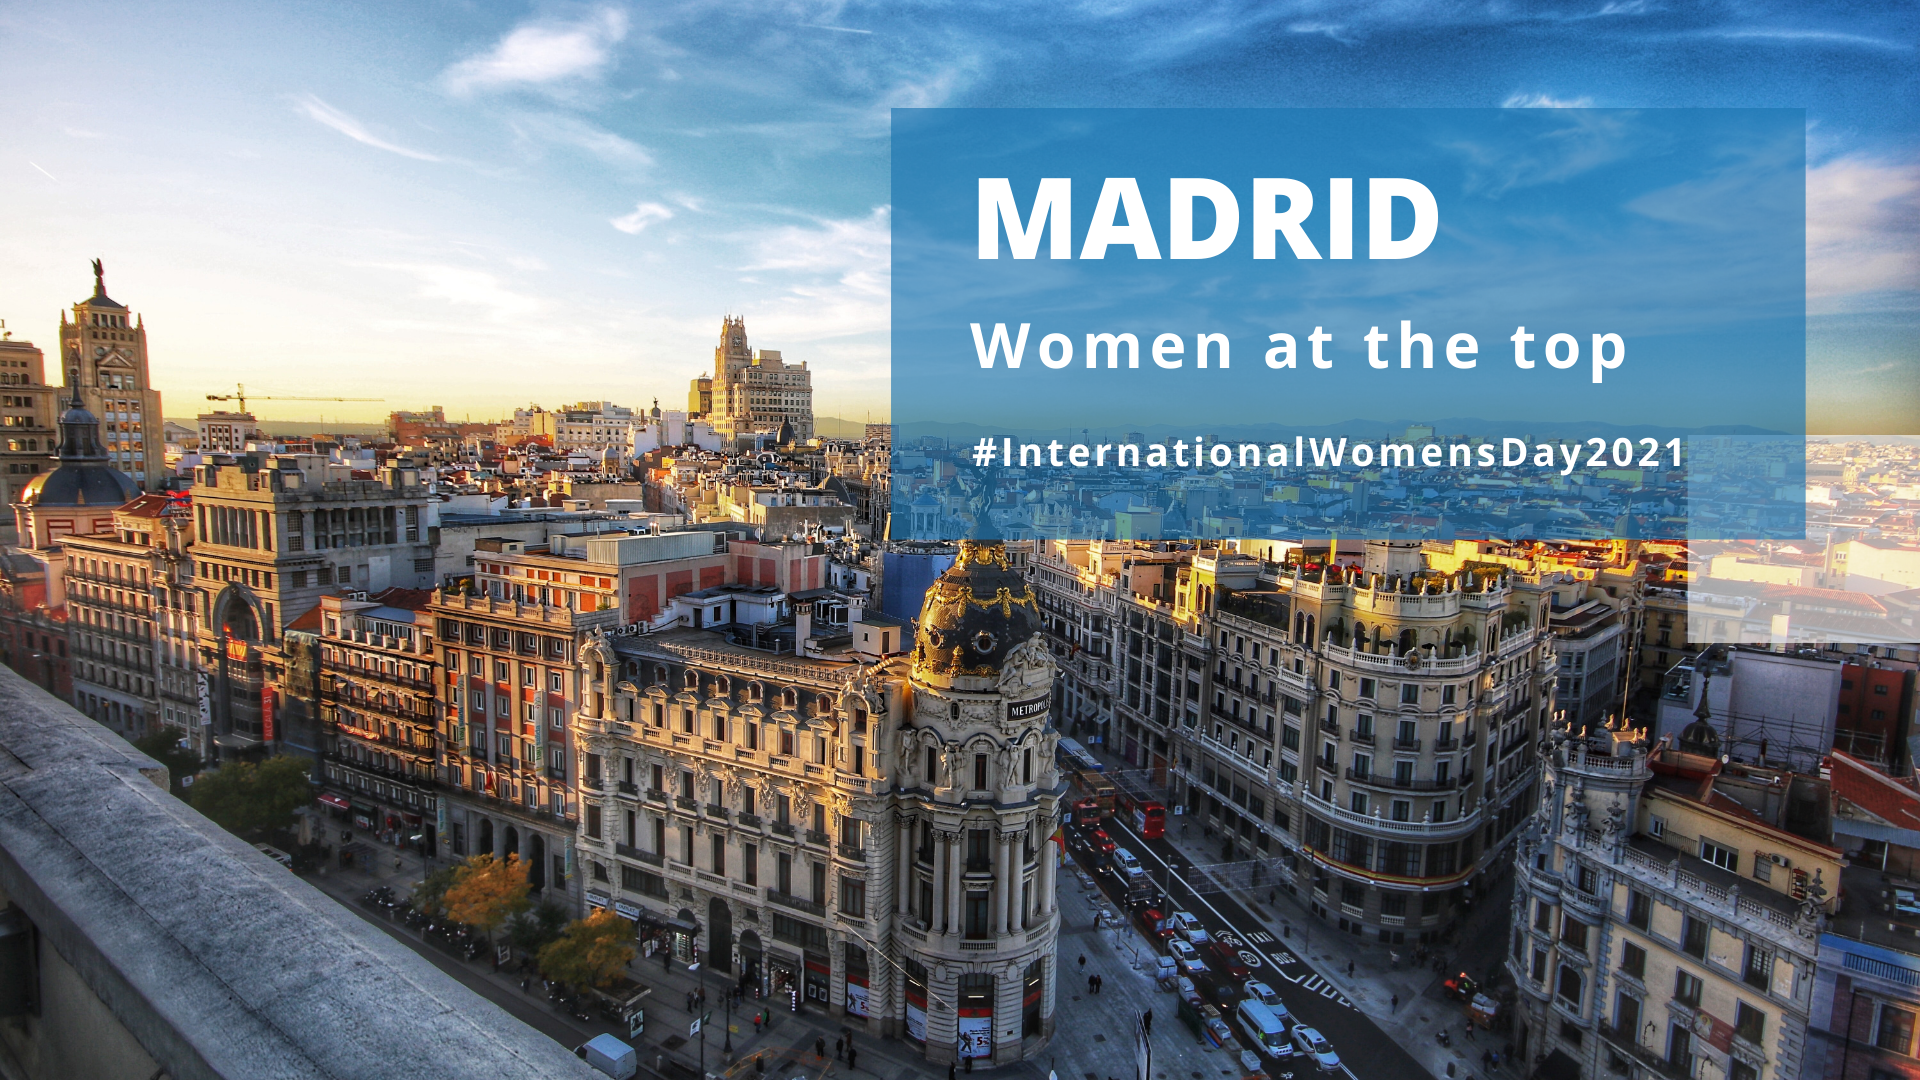 Madrid: Women at the top